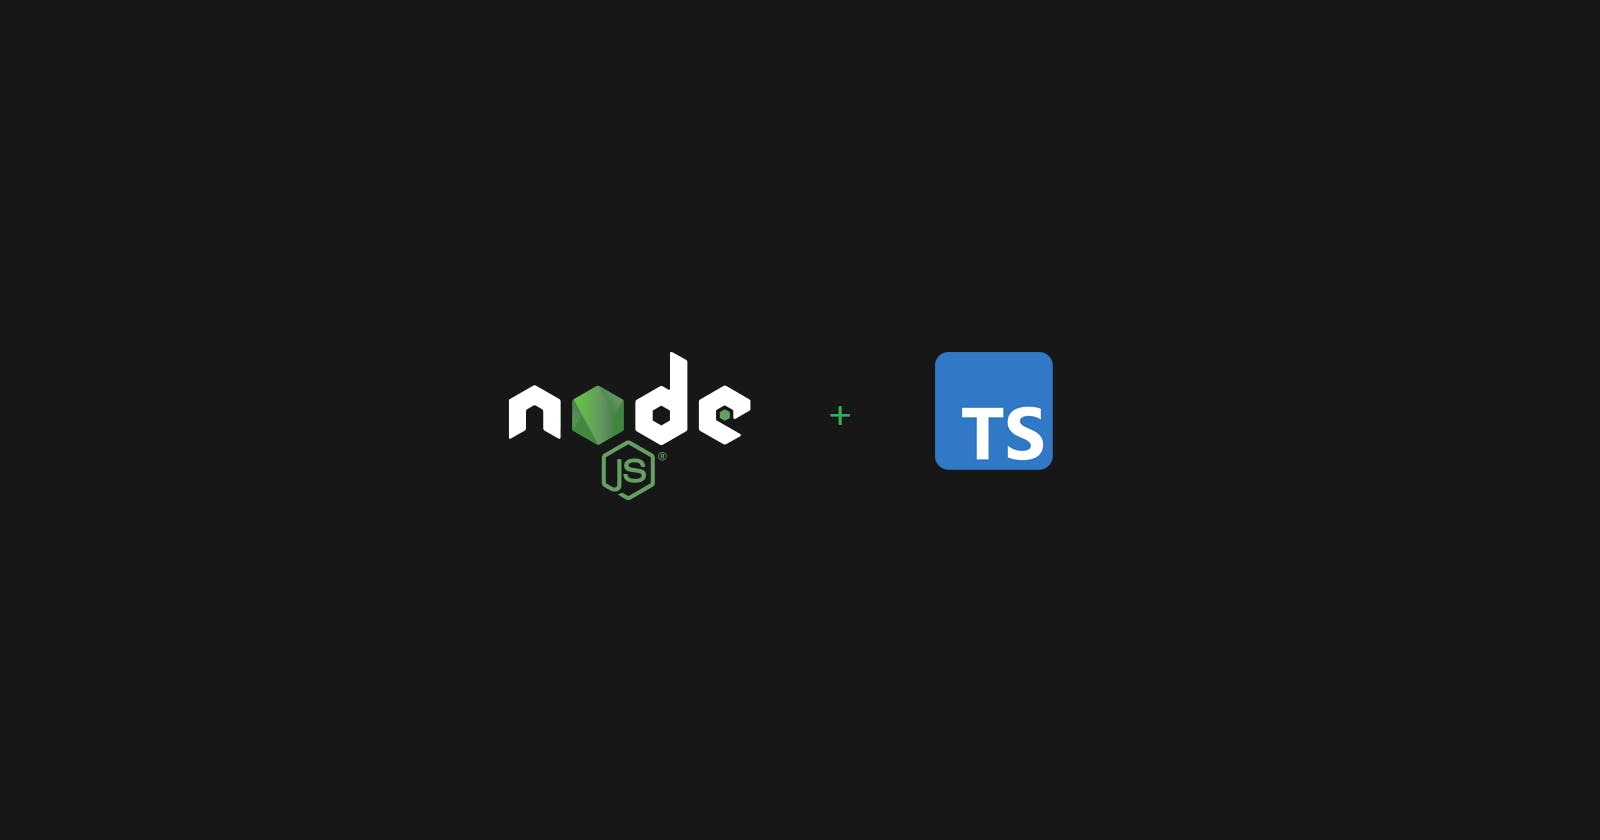 How to set up a simple Node.js and Typescript development environment